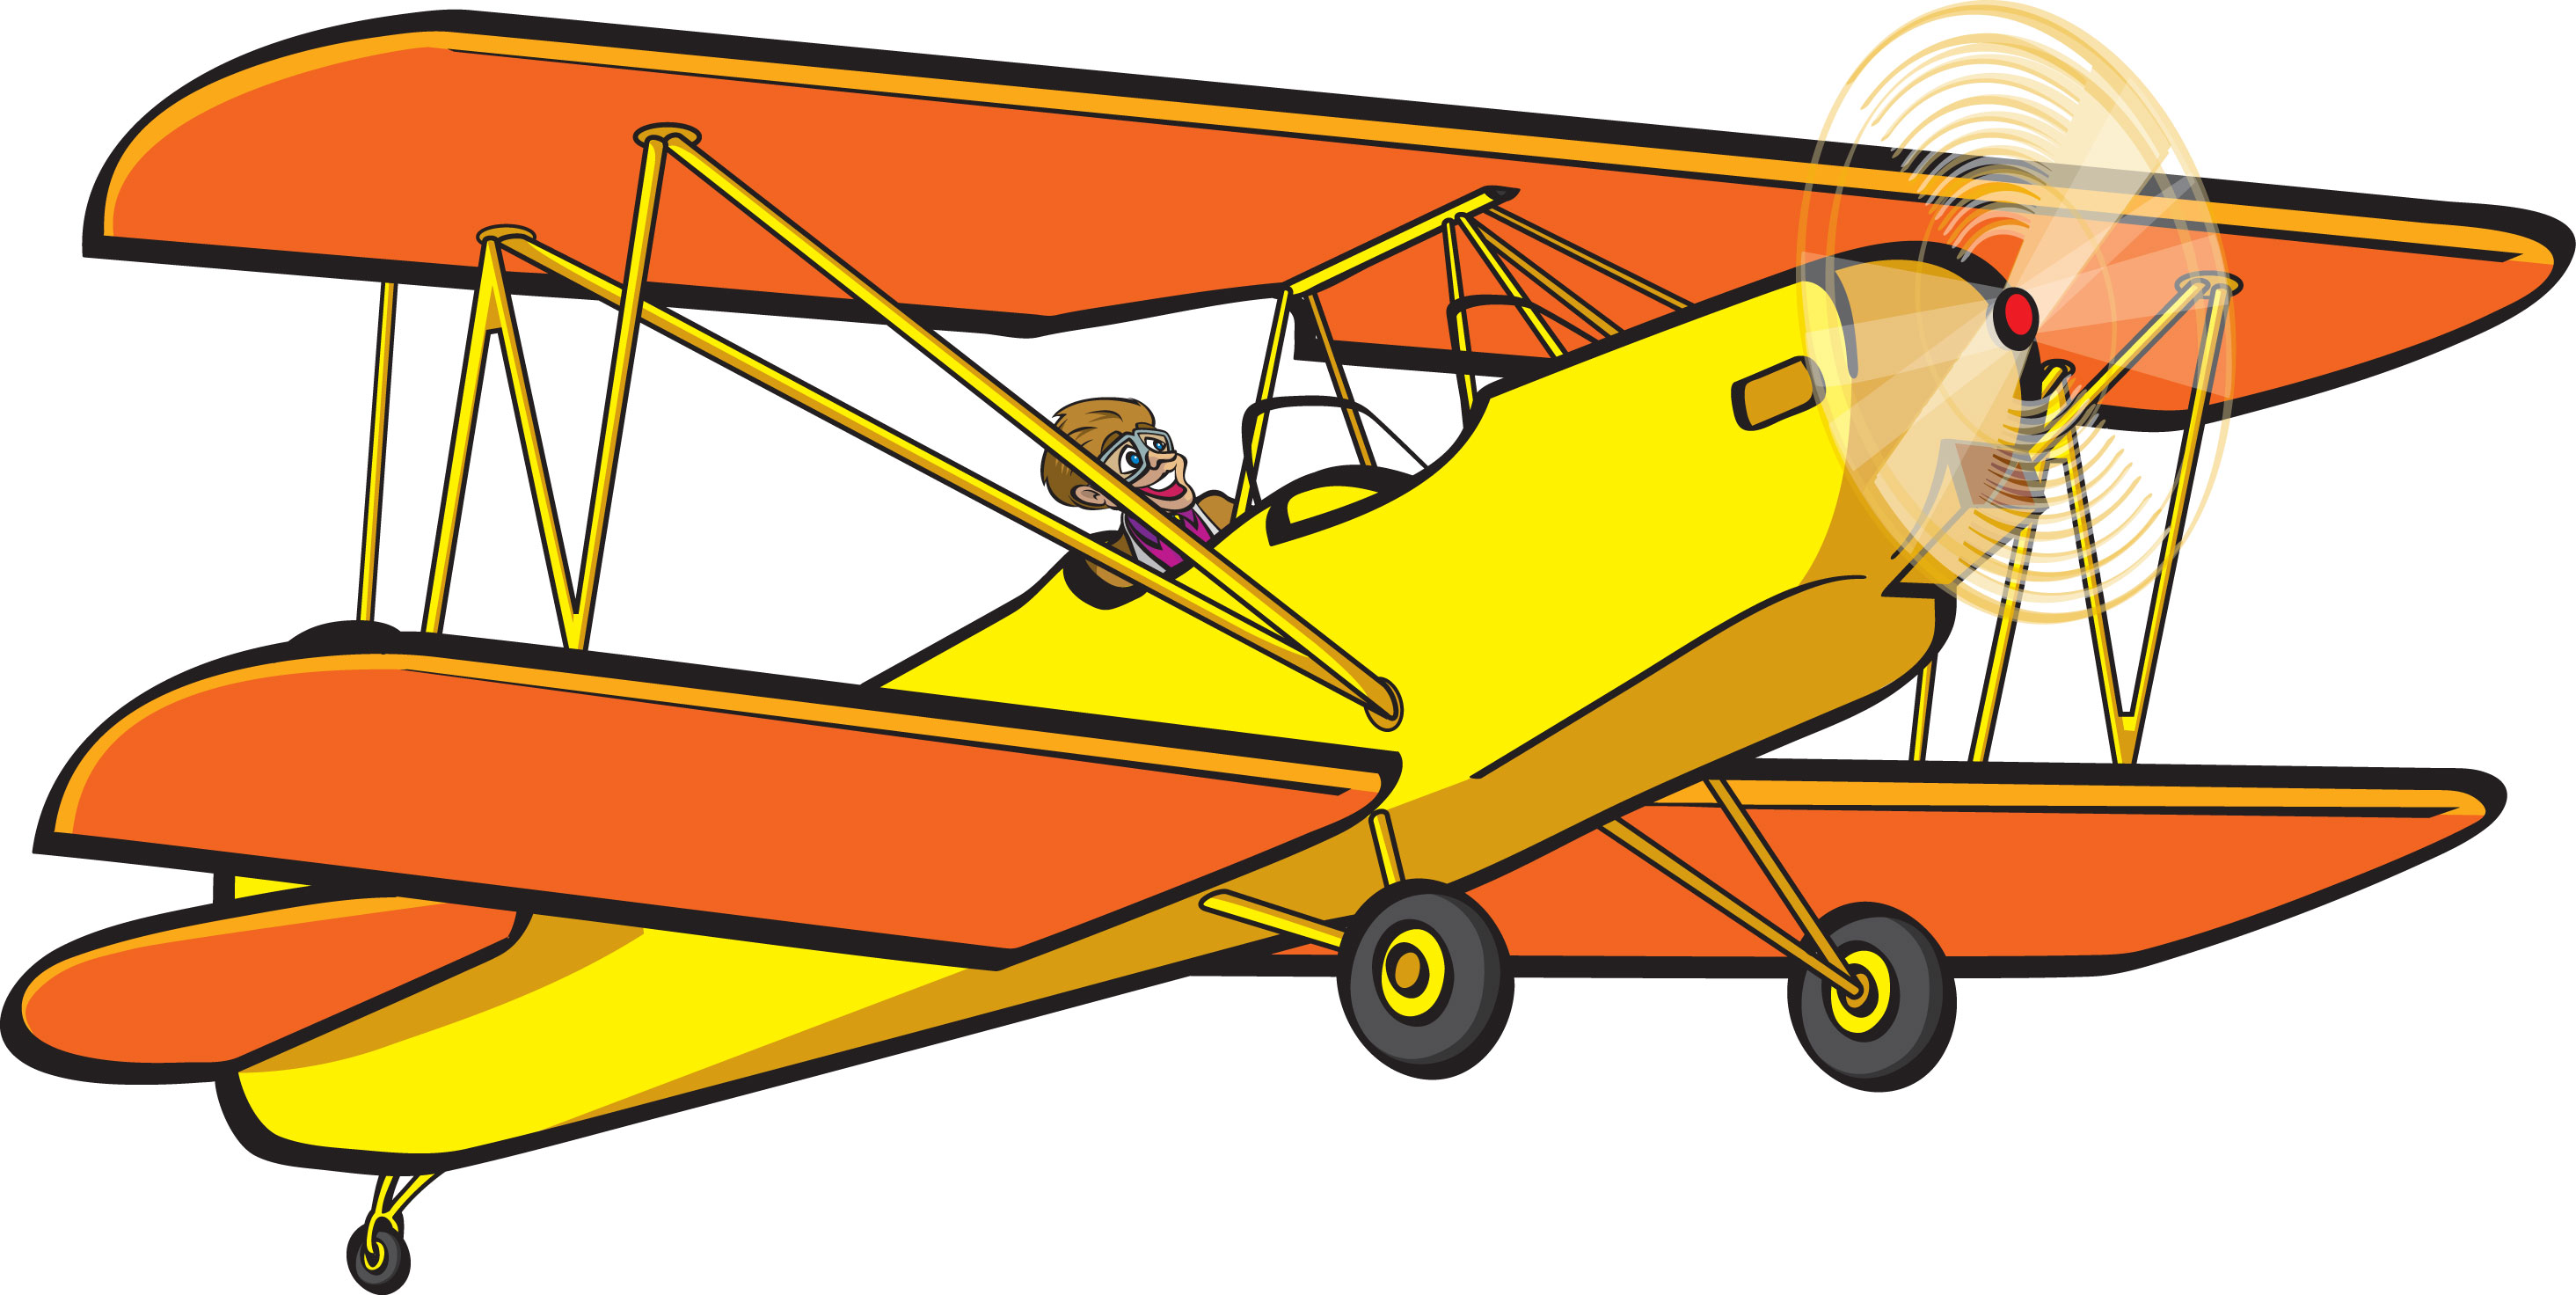 vintage biplane clipart save our oceans rh saveouroceans info old airplanes clipart